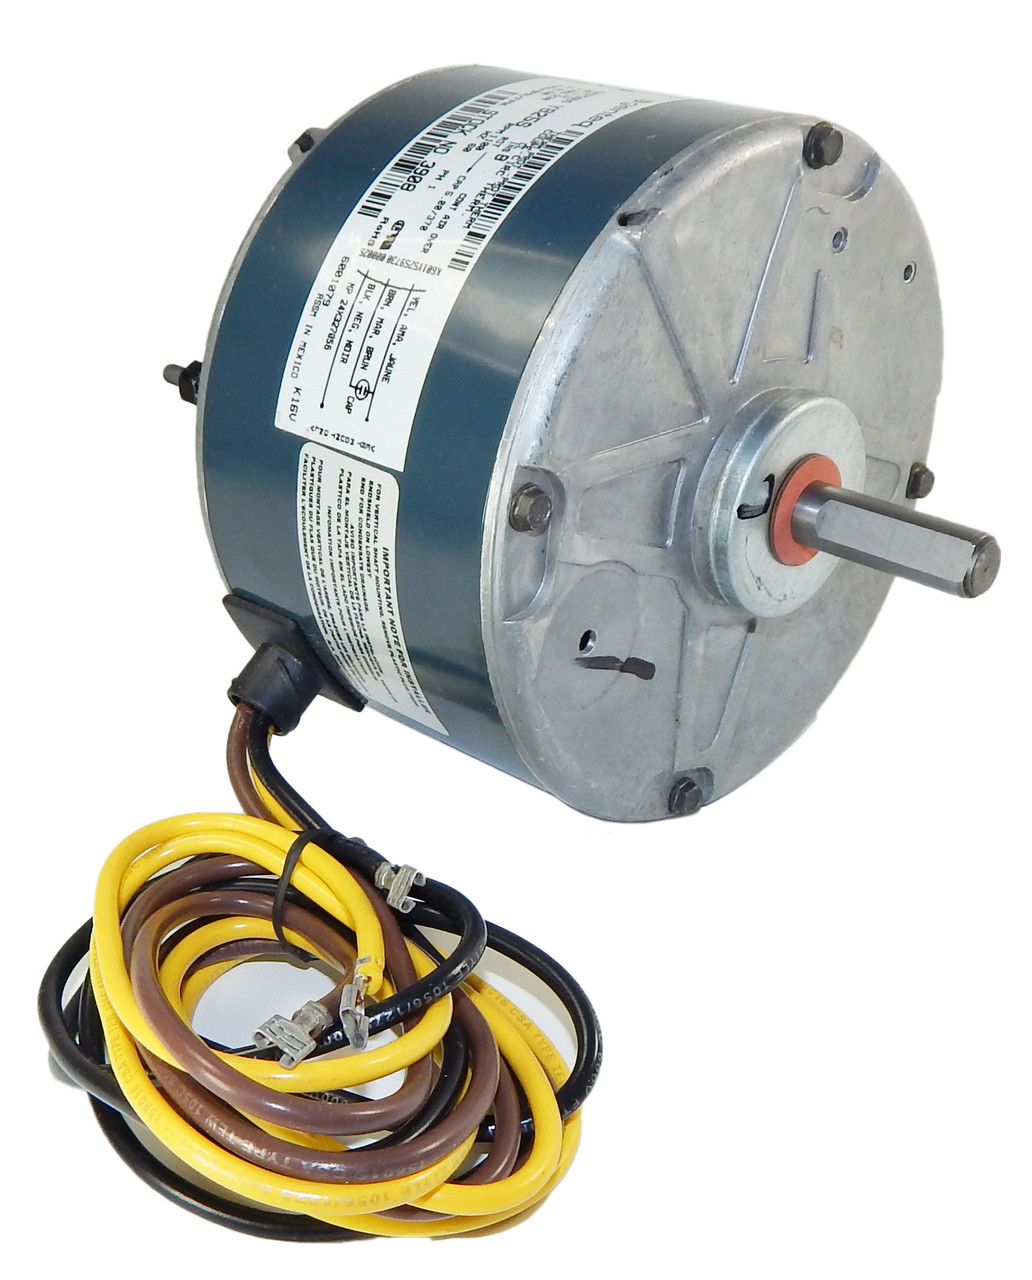 small resolution of carrier condenser electric motor 5kcp39bgy825s 1 12hp 1075 rpm 208 230v g3908